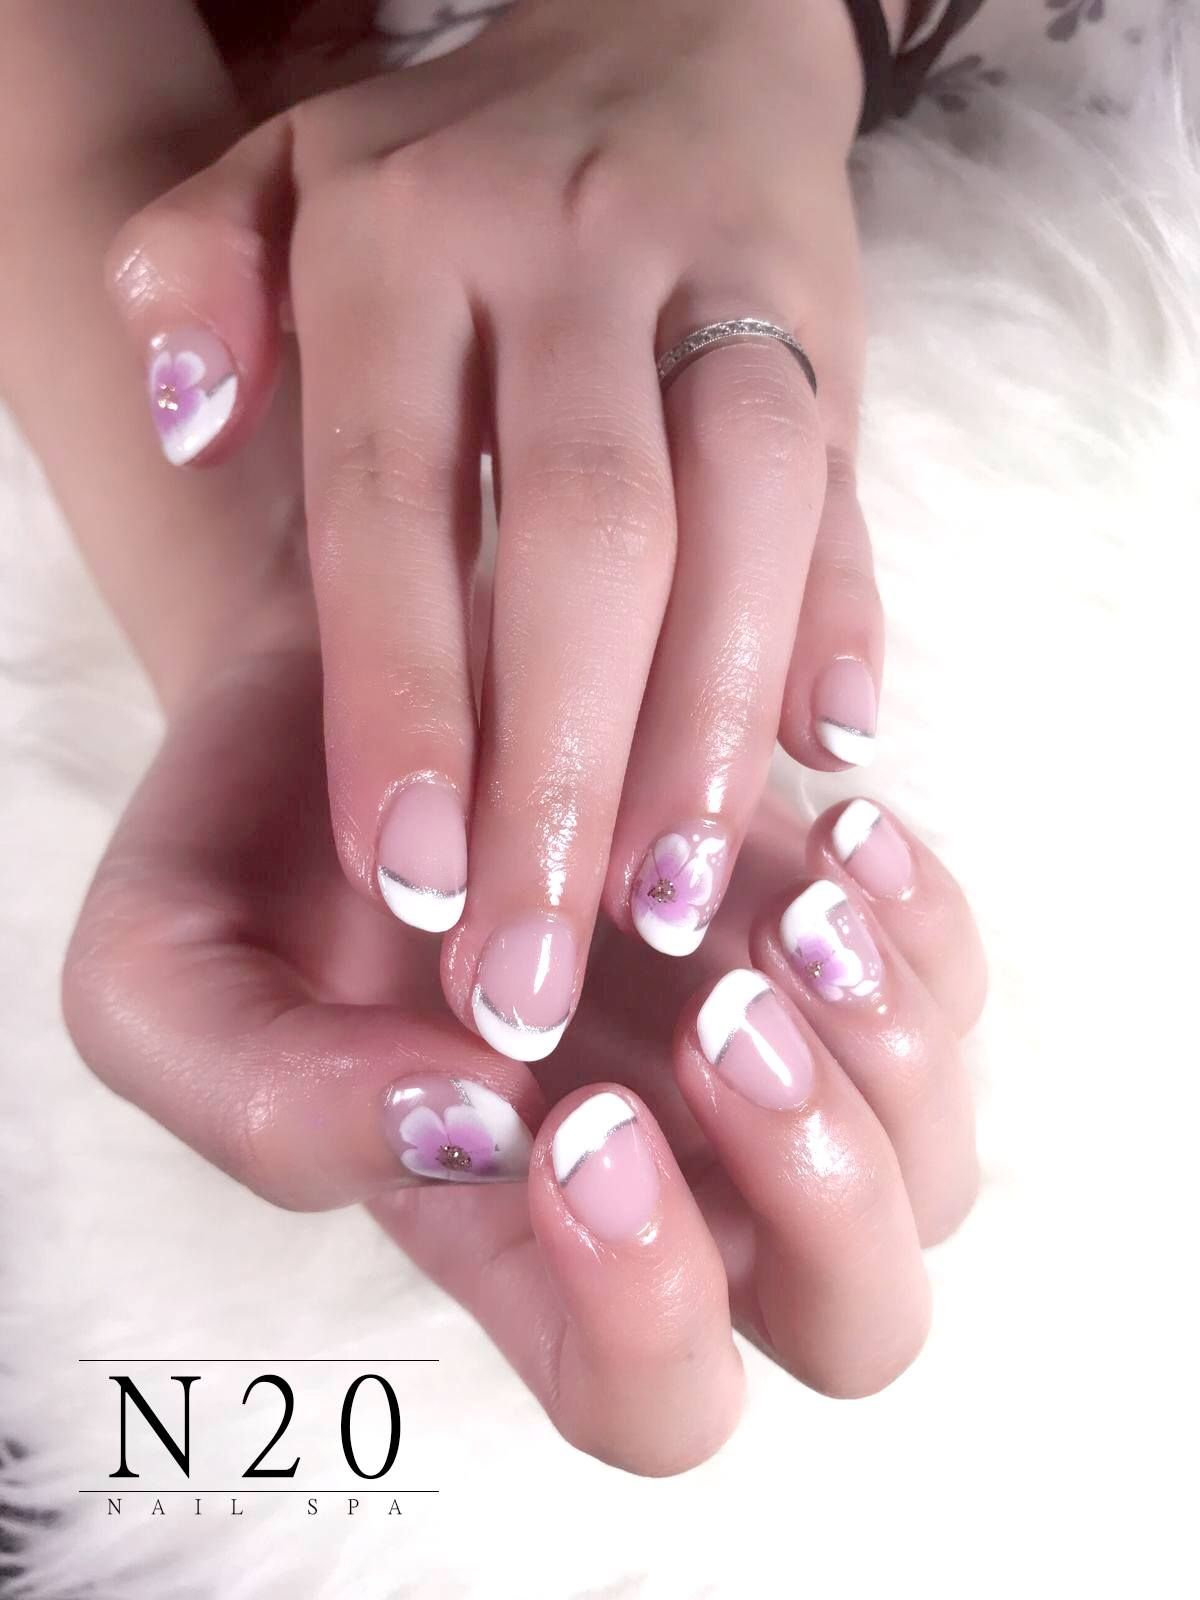 White band silver horizon pink flora clear manicure nail art